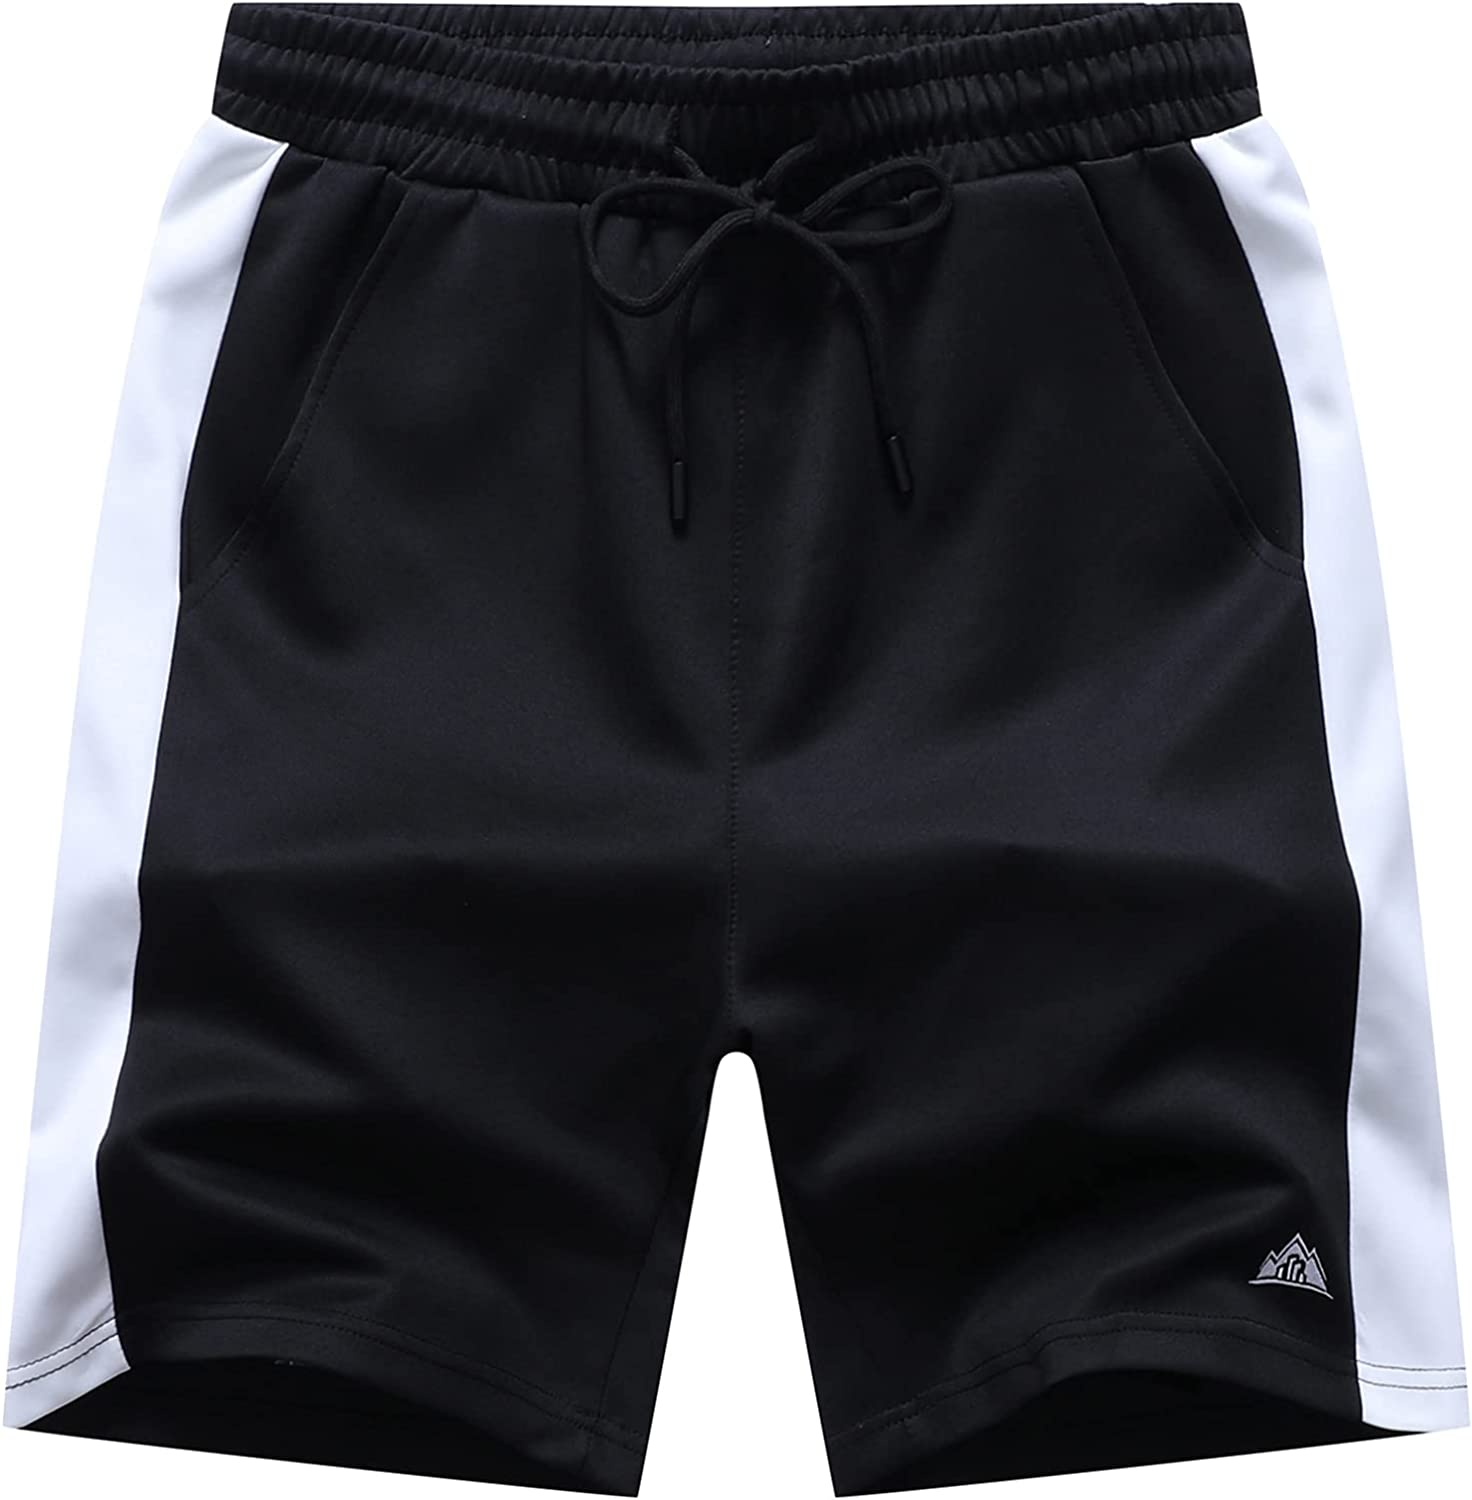 Max 64% OFF EXQ Mens Athletic Gym Shorts Casual Ranking TOP2 Workout Running with